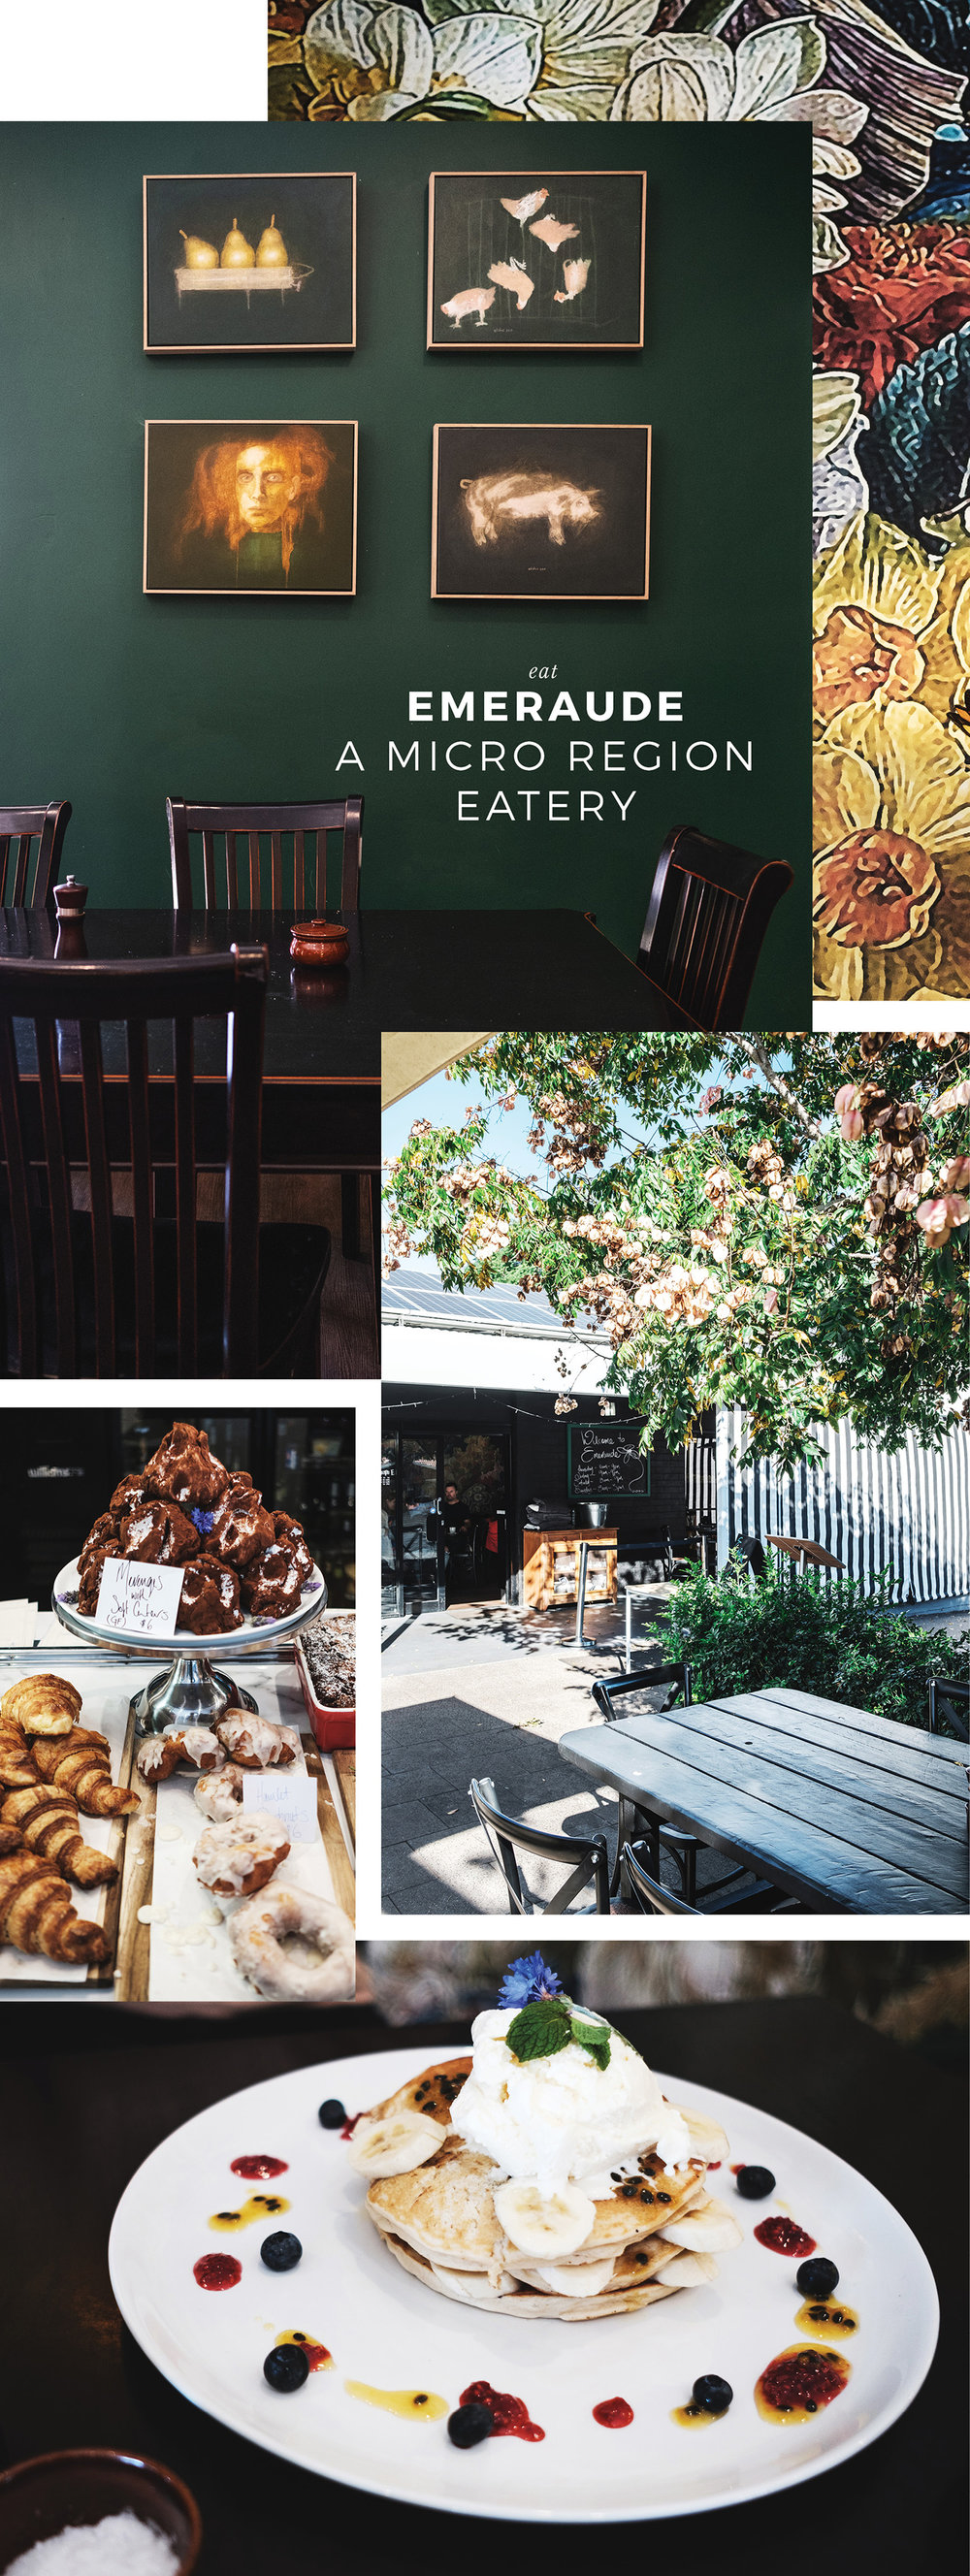 adore_home_blog_EMERAUDE_A MICRO_REGION_EATERY_CAFE_HAMPTON.jpg